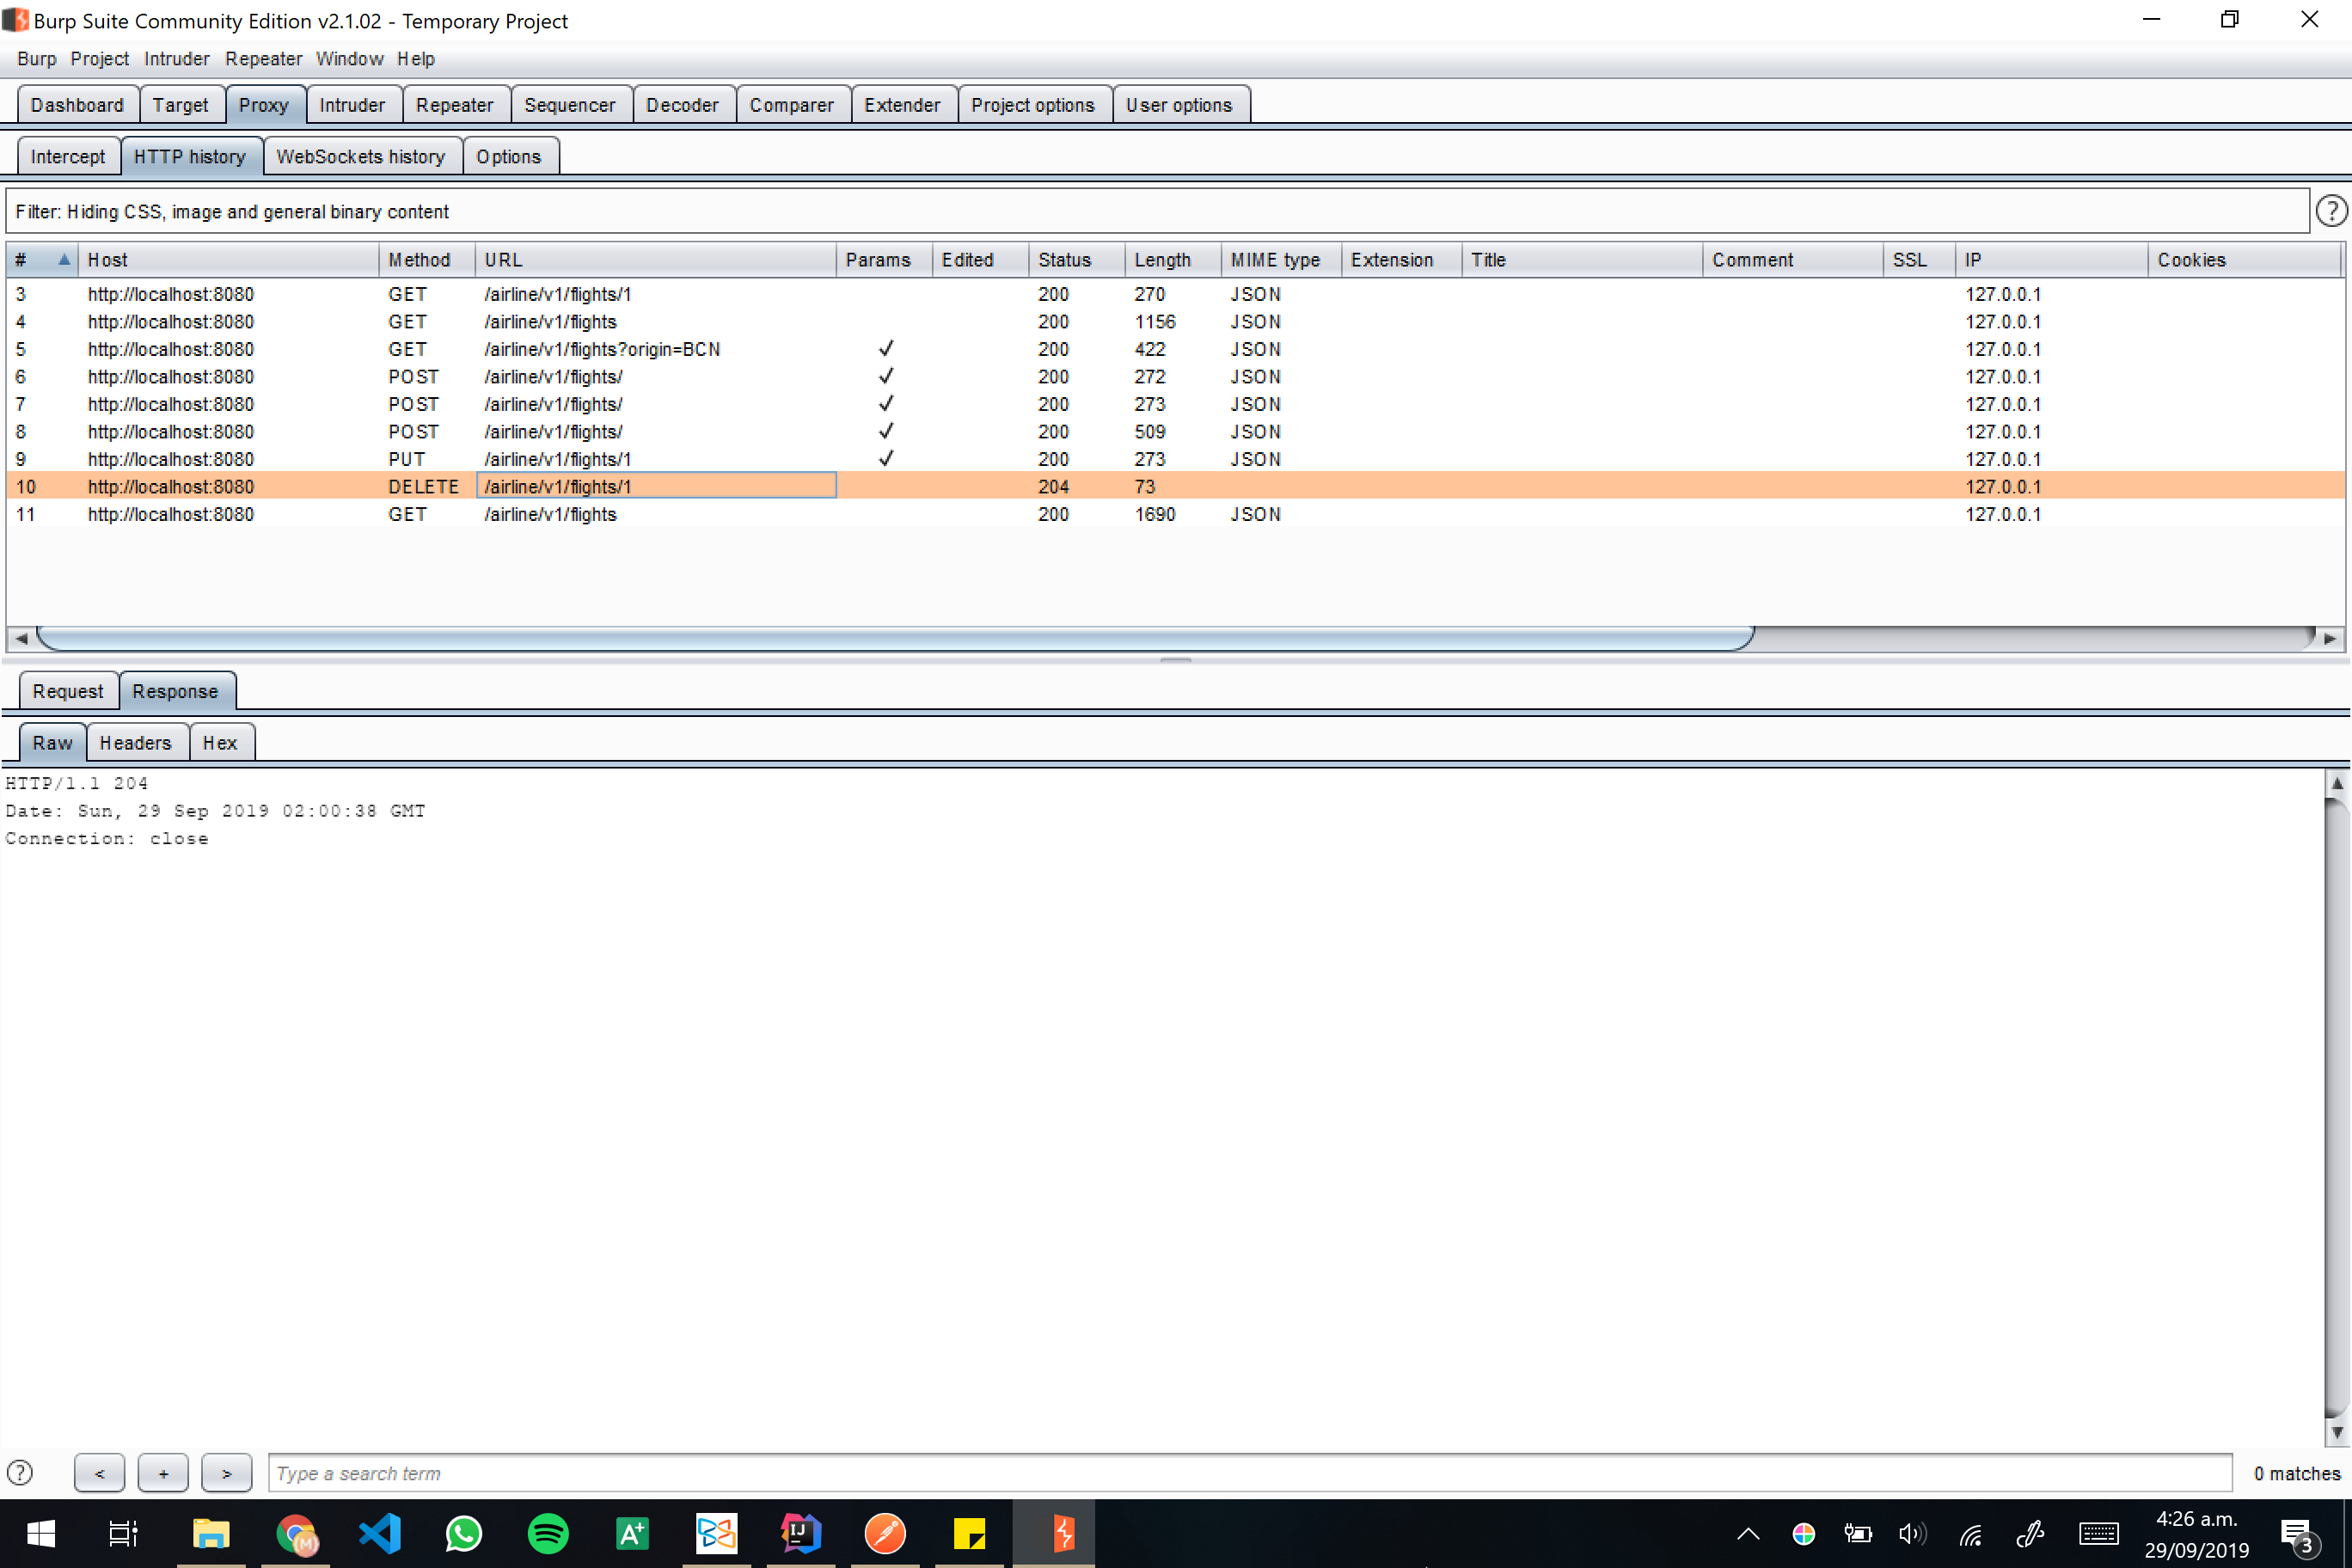 Burp screenshot 20